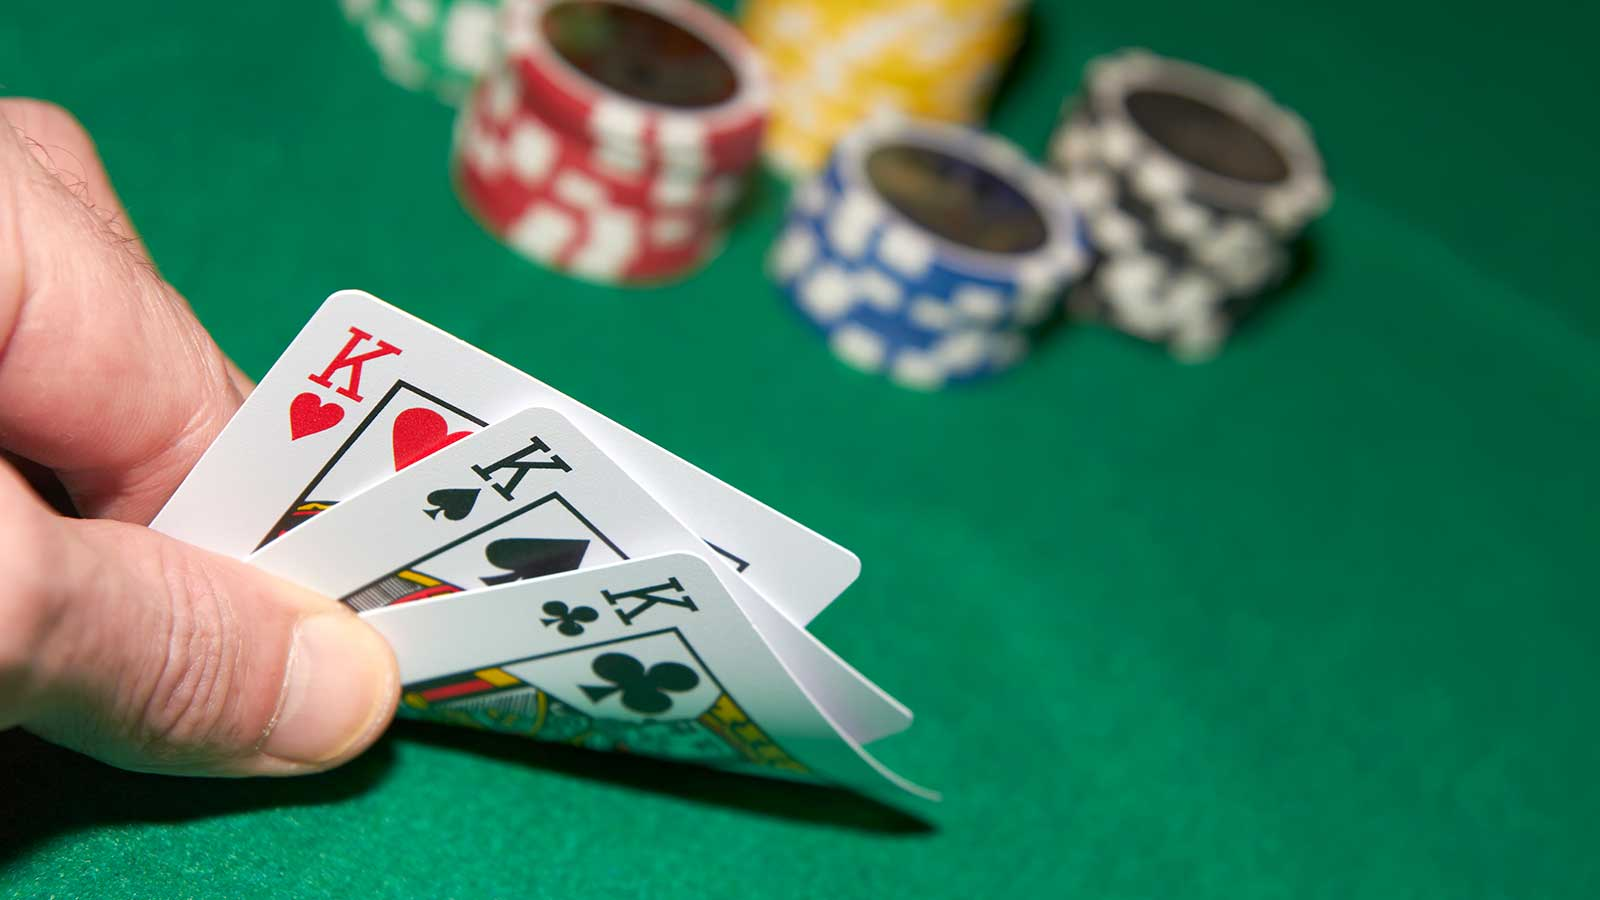 Gamble And Gain Rewards With Poker Online